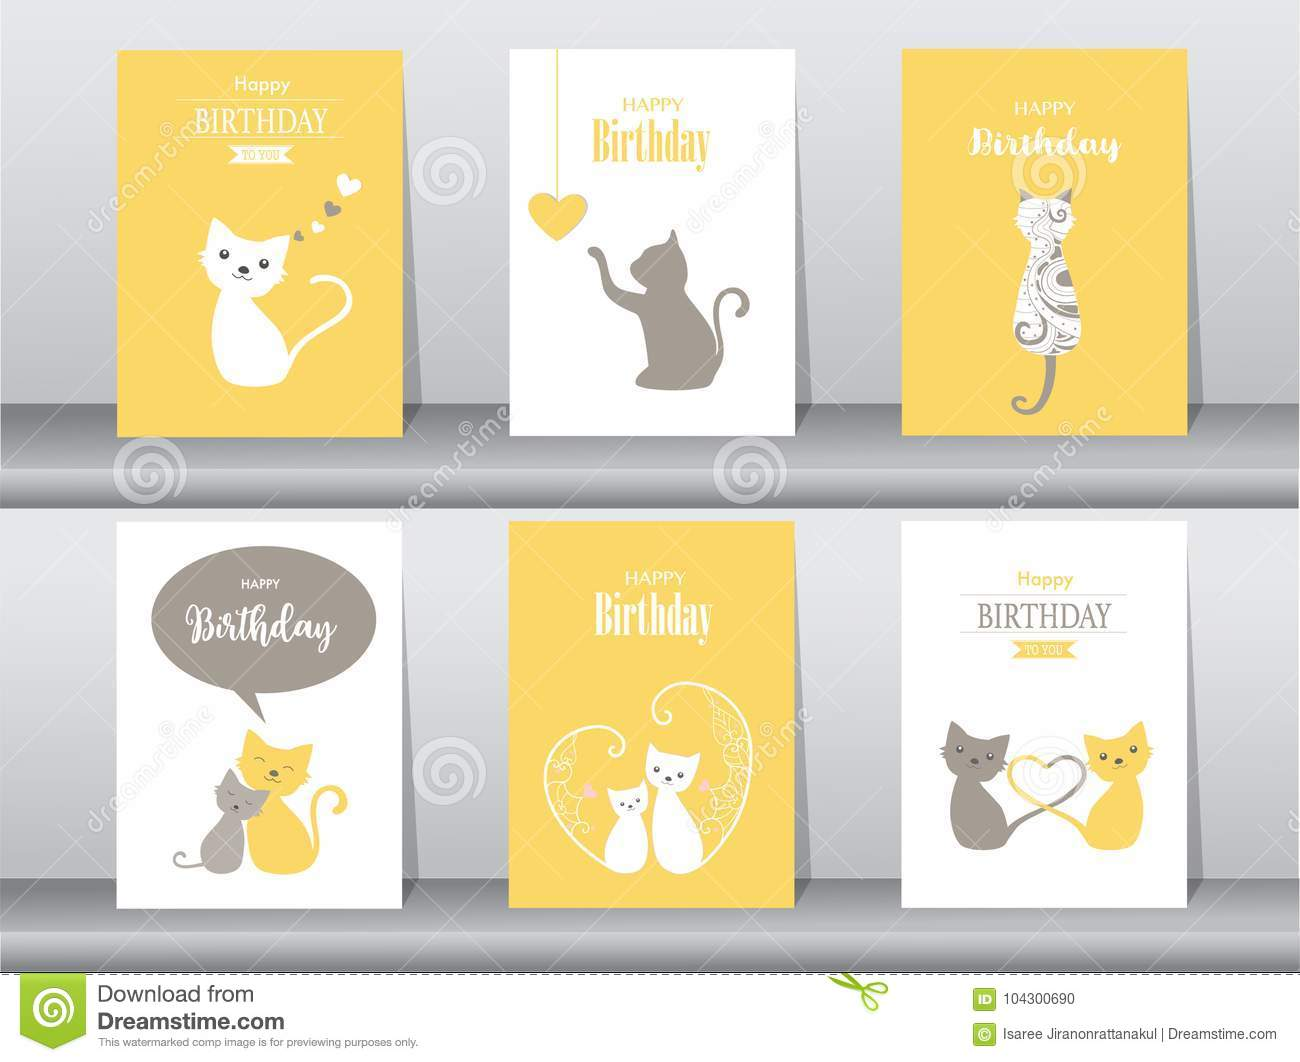 Set of birthday cards,poster,invitation cards